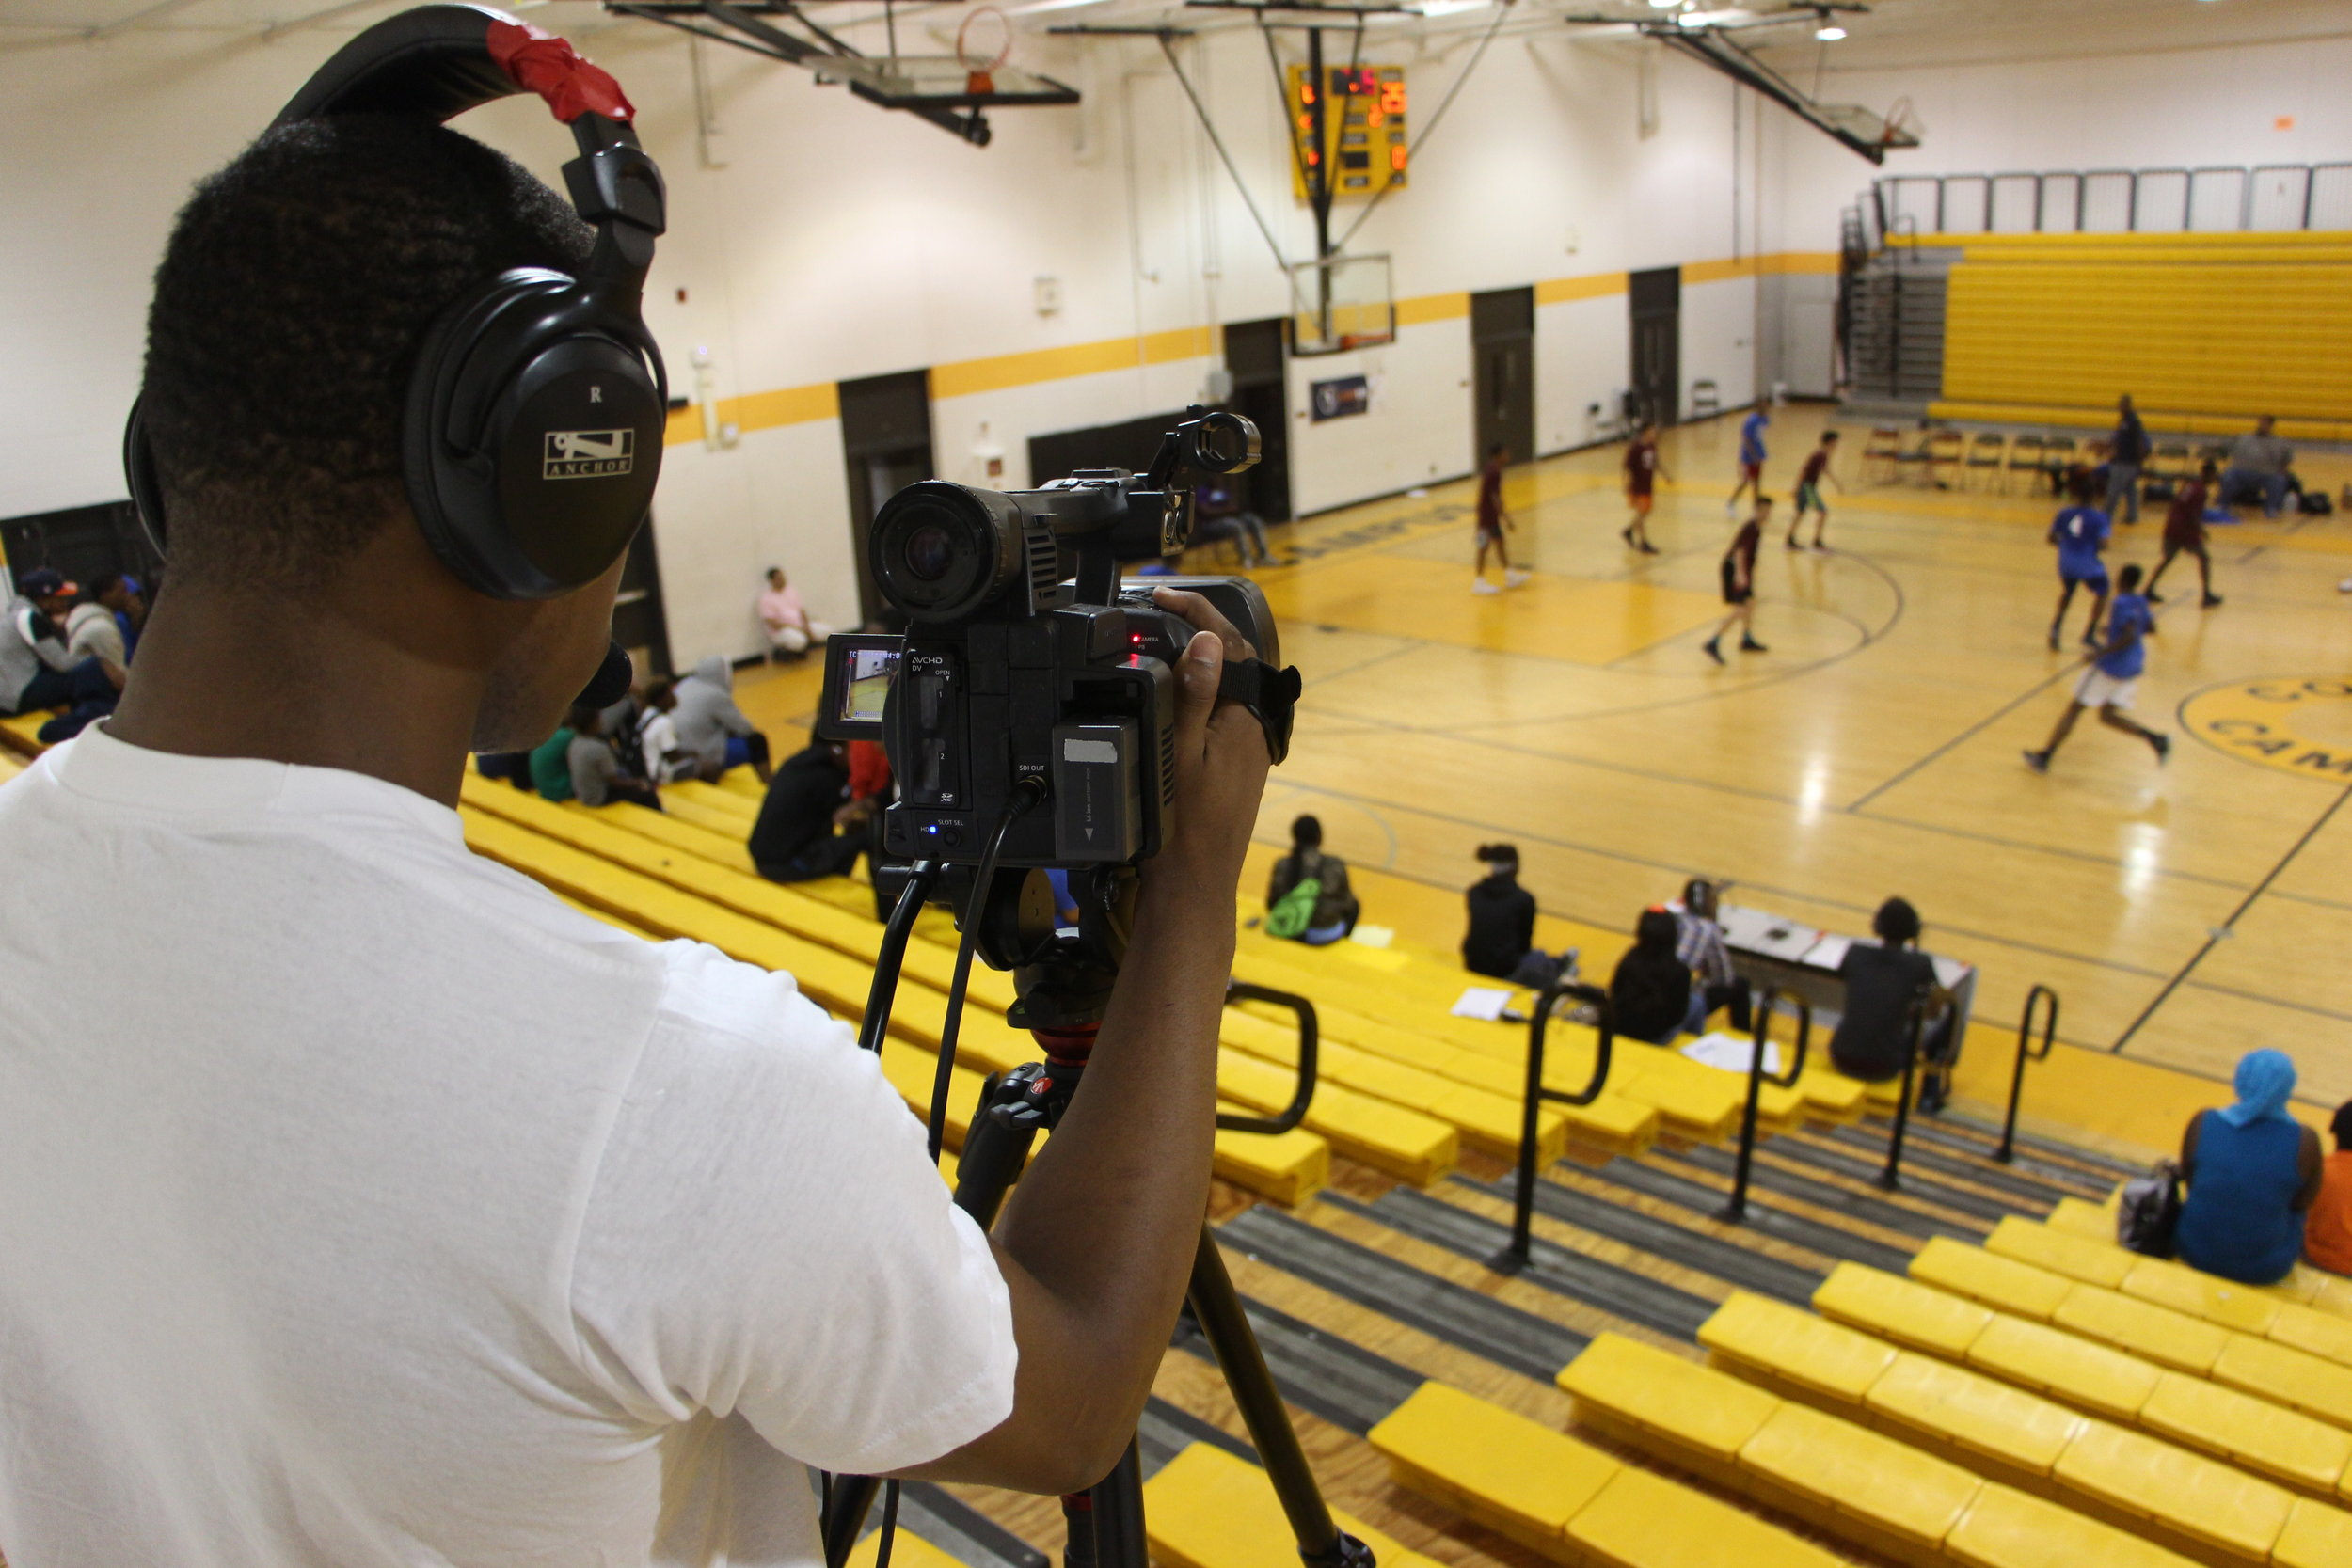 HoopsHIGH SUMMER CLASSICS - Our premier sports broadcasting program's tournaments take place every winter and spring in North Lawndale.